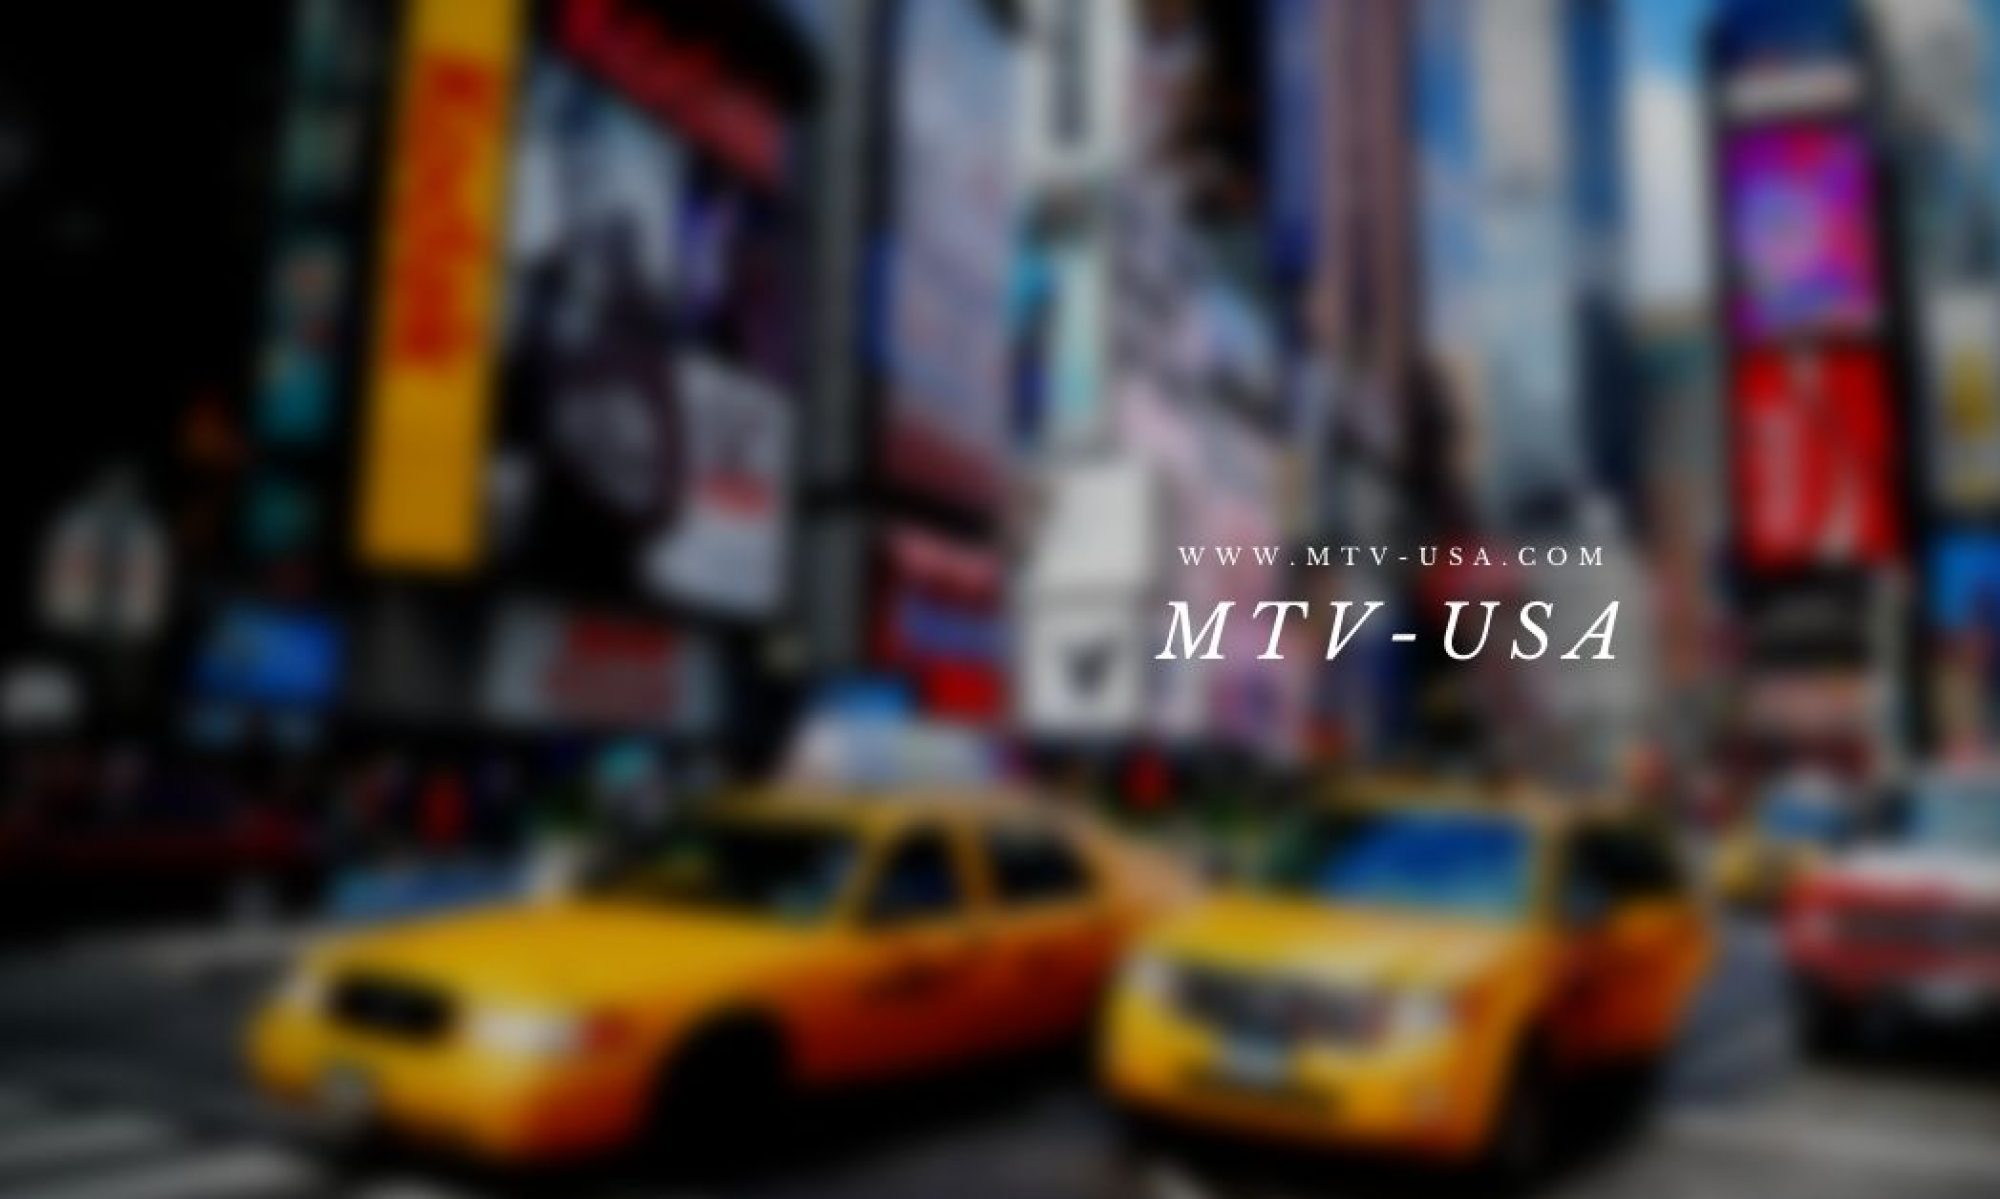 I will chart your song or music video on MTV - USA website